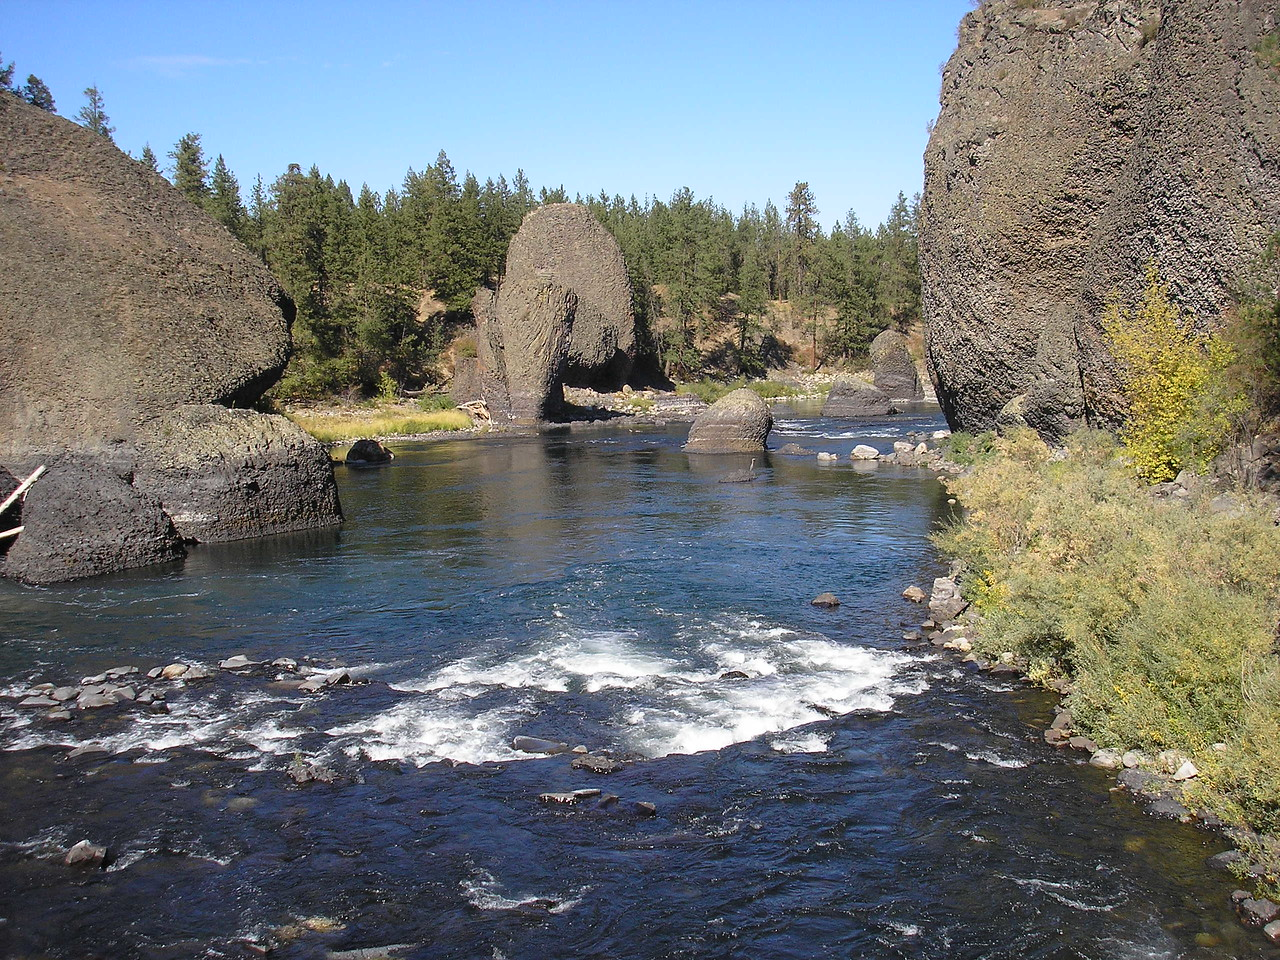 The Spokane River and several of the distinctive rock formations.